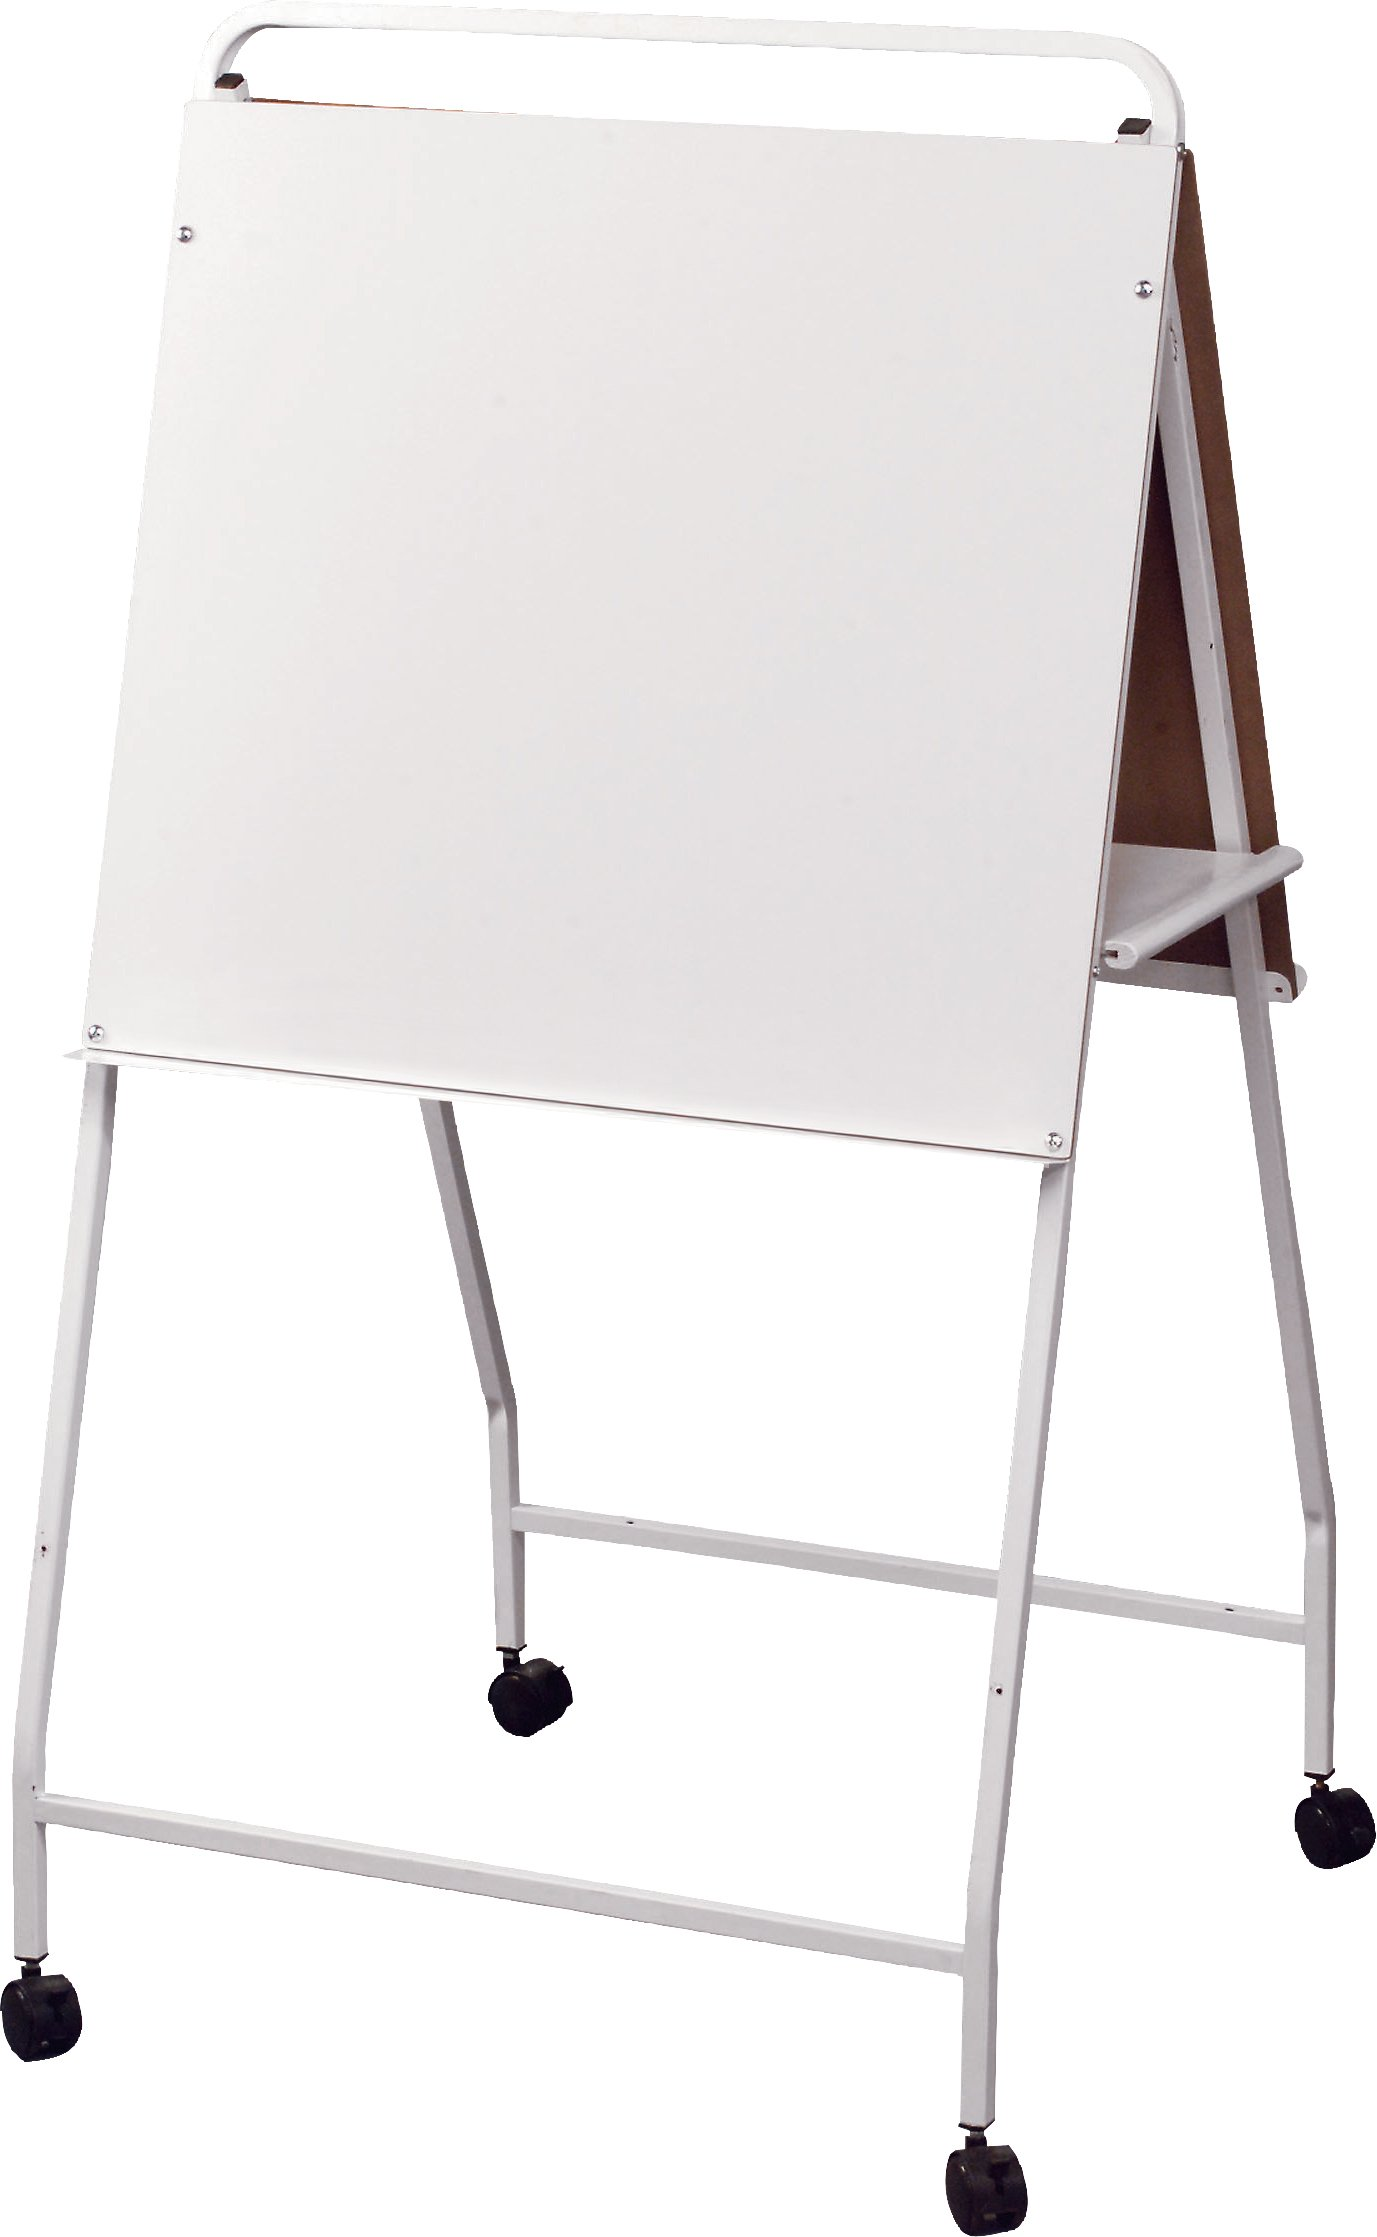 Best-Rite Eco Easel, Double Sided Dry Erase (786) by Best-Rite